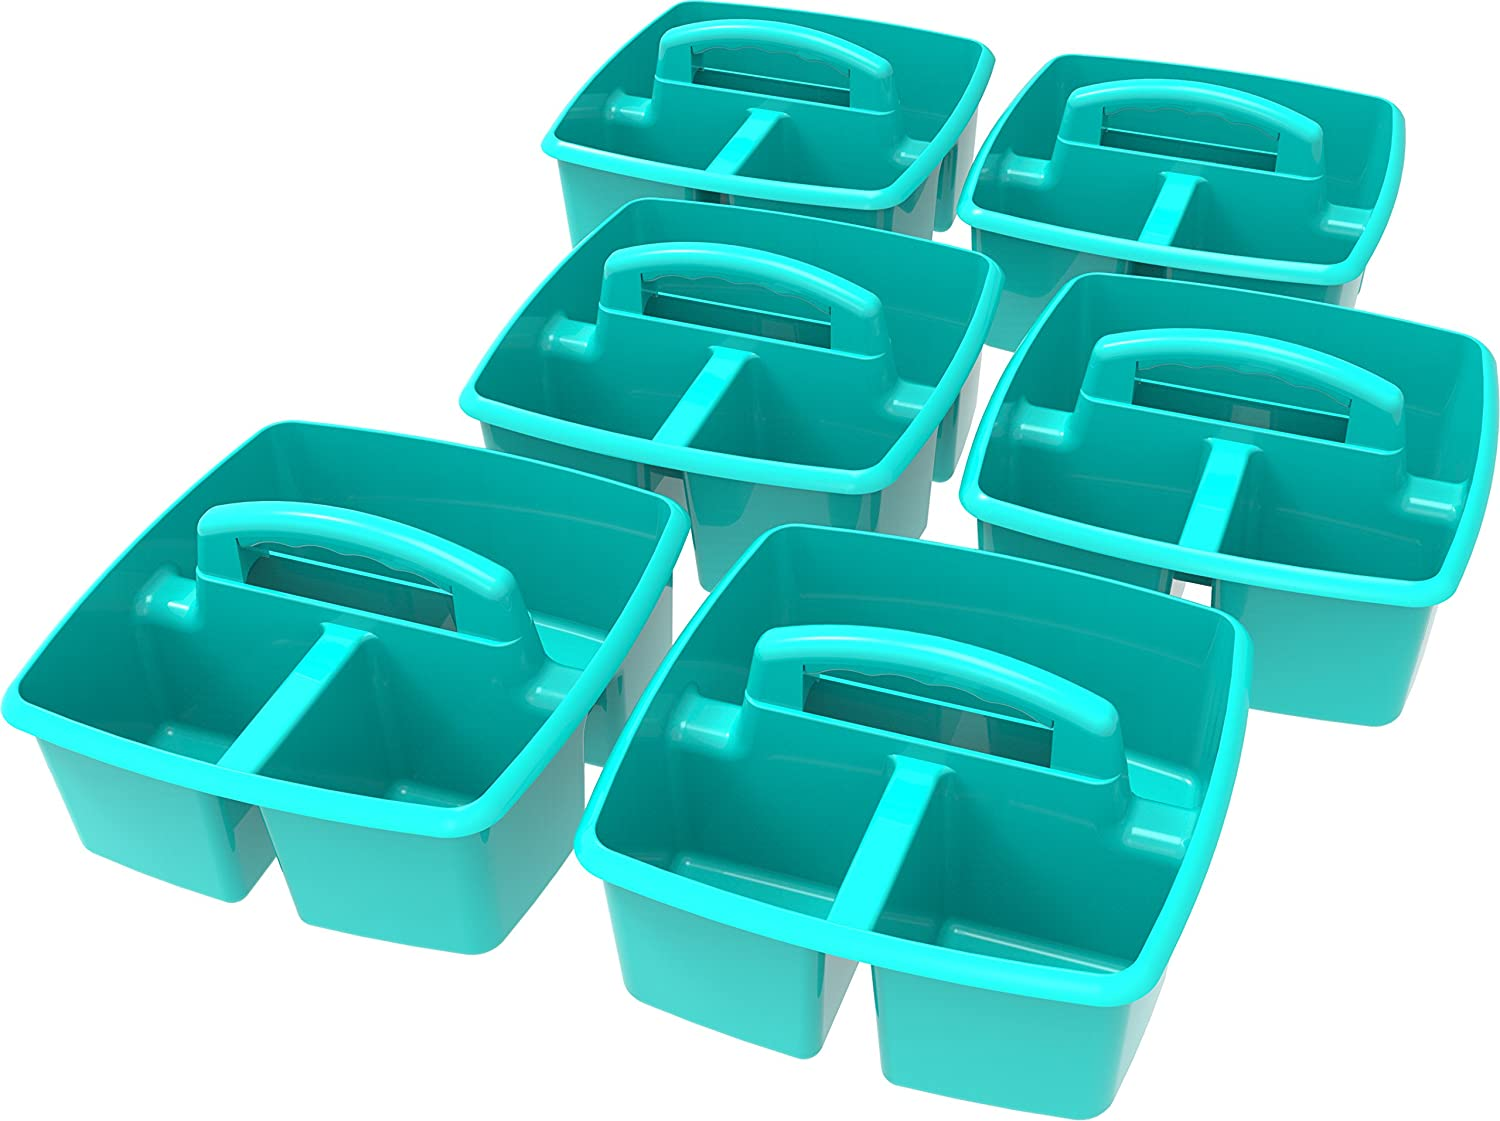 Storex Classroom Caddy, 9.25 x 9.25 x 5.25, Blue, Case of 6 (00947E06C) 9.25 x 9.25 x 5.25 Storex Industries Corp.